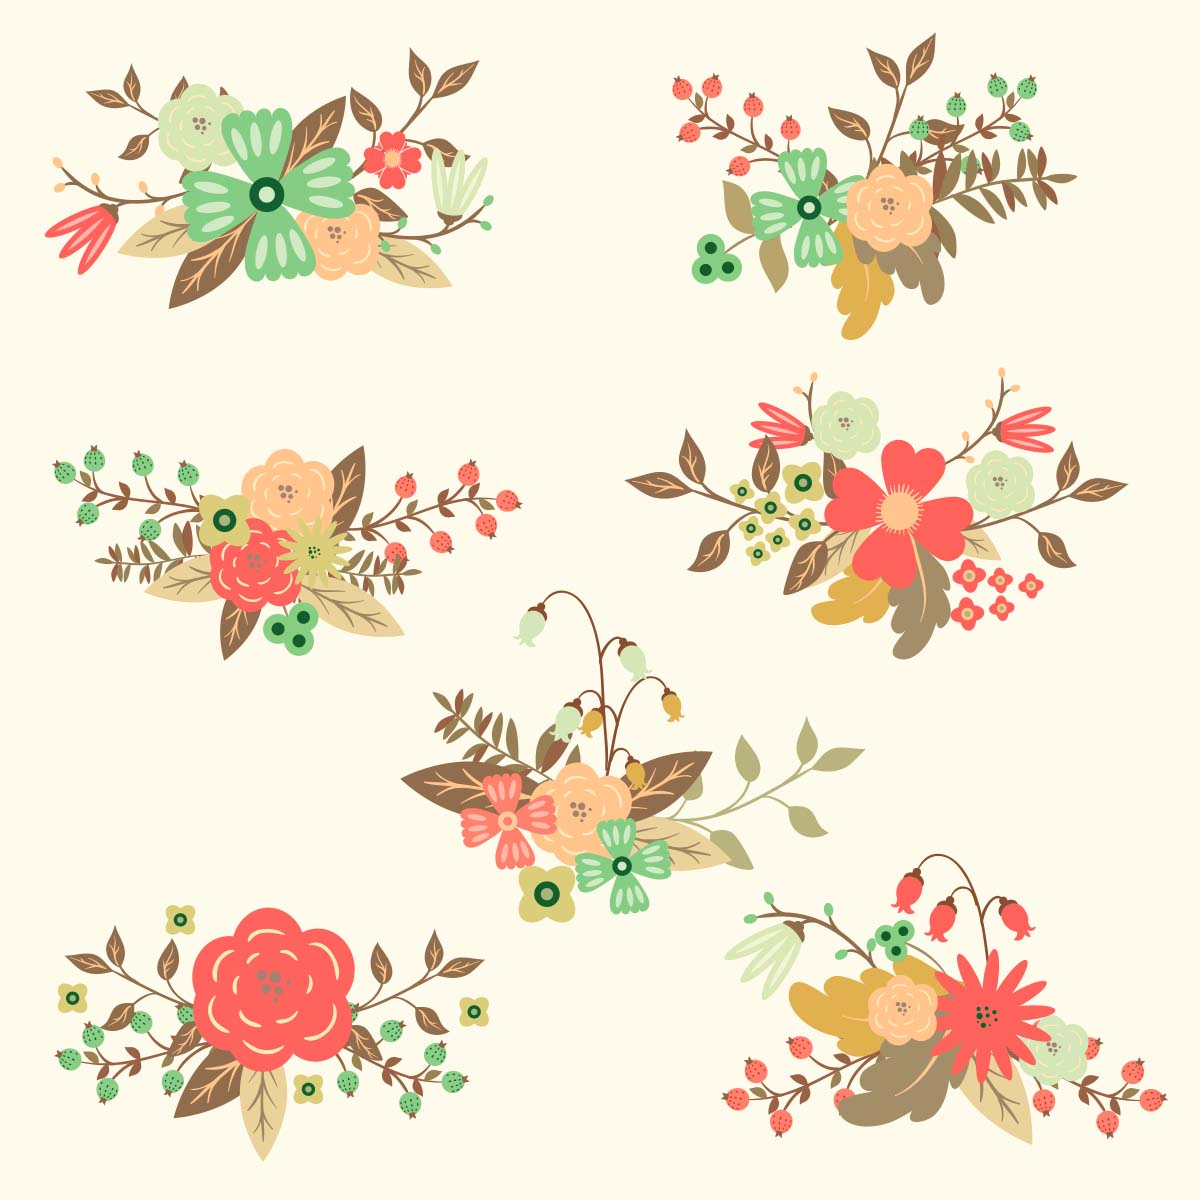 Free Hand Drawing Flowers at GetDrawings.com | Free for personal use ...